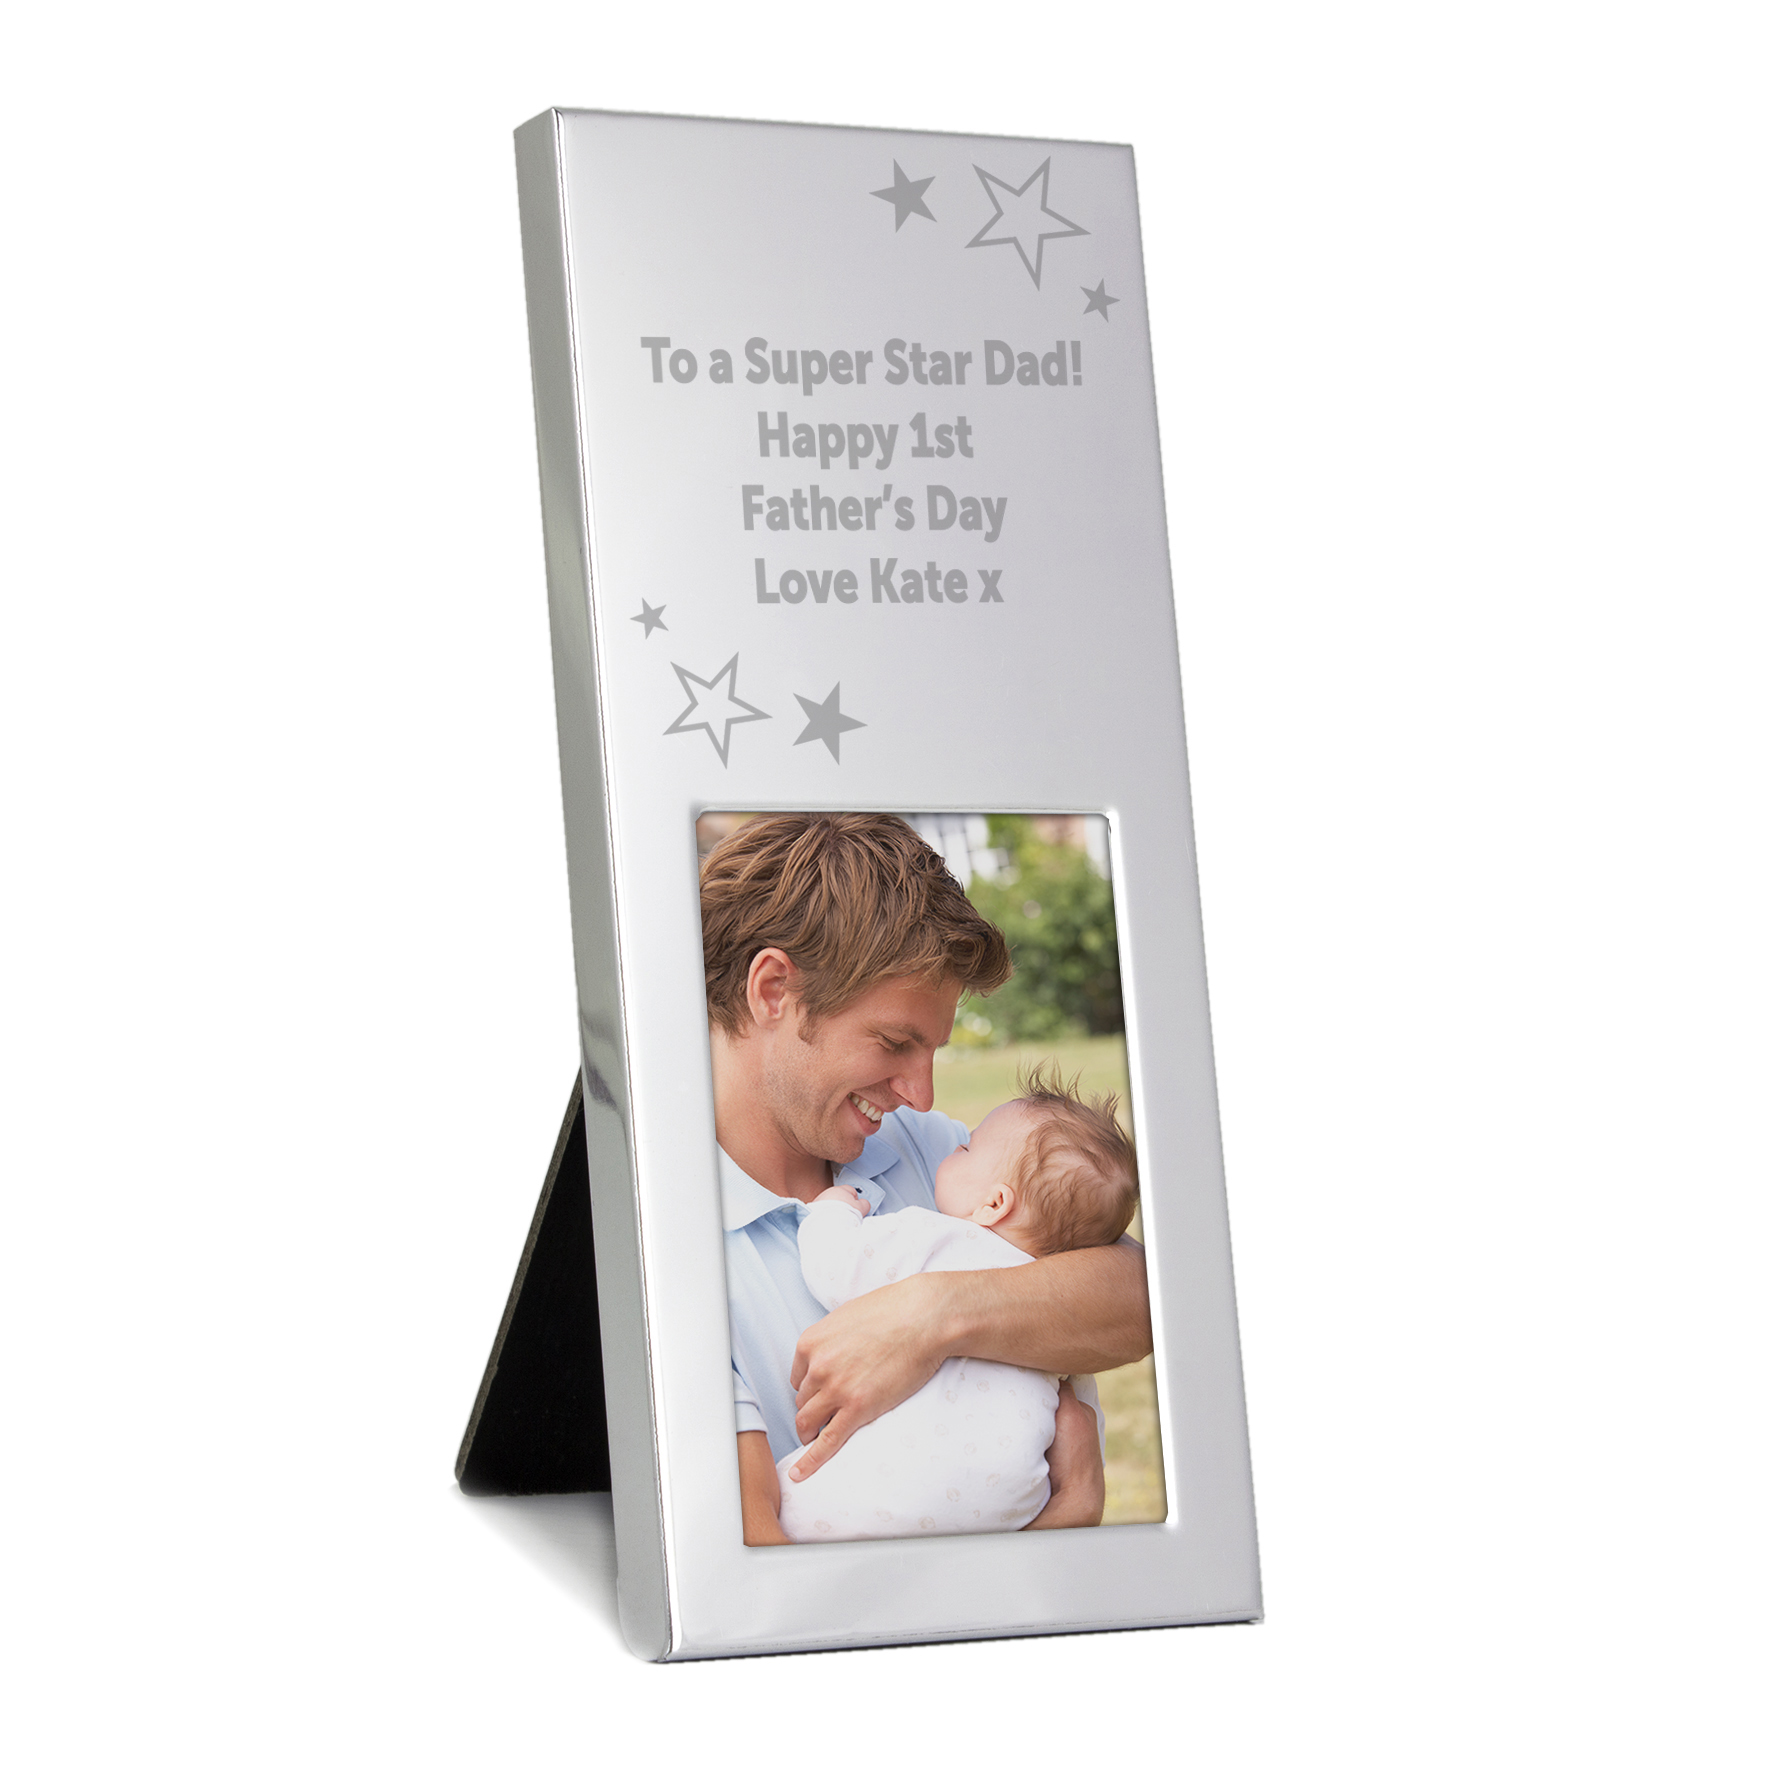 Engraved Stars Small Silver 2x3 Frame